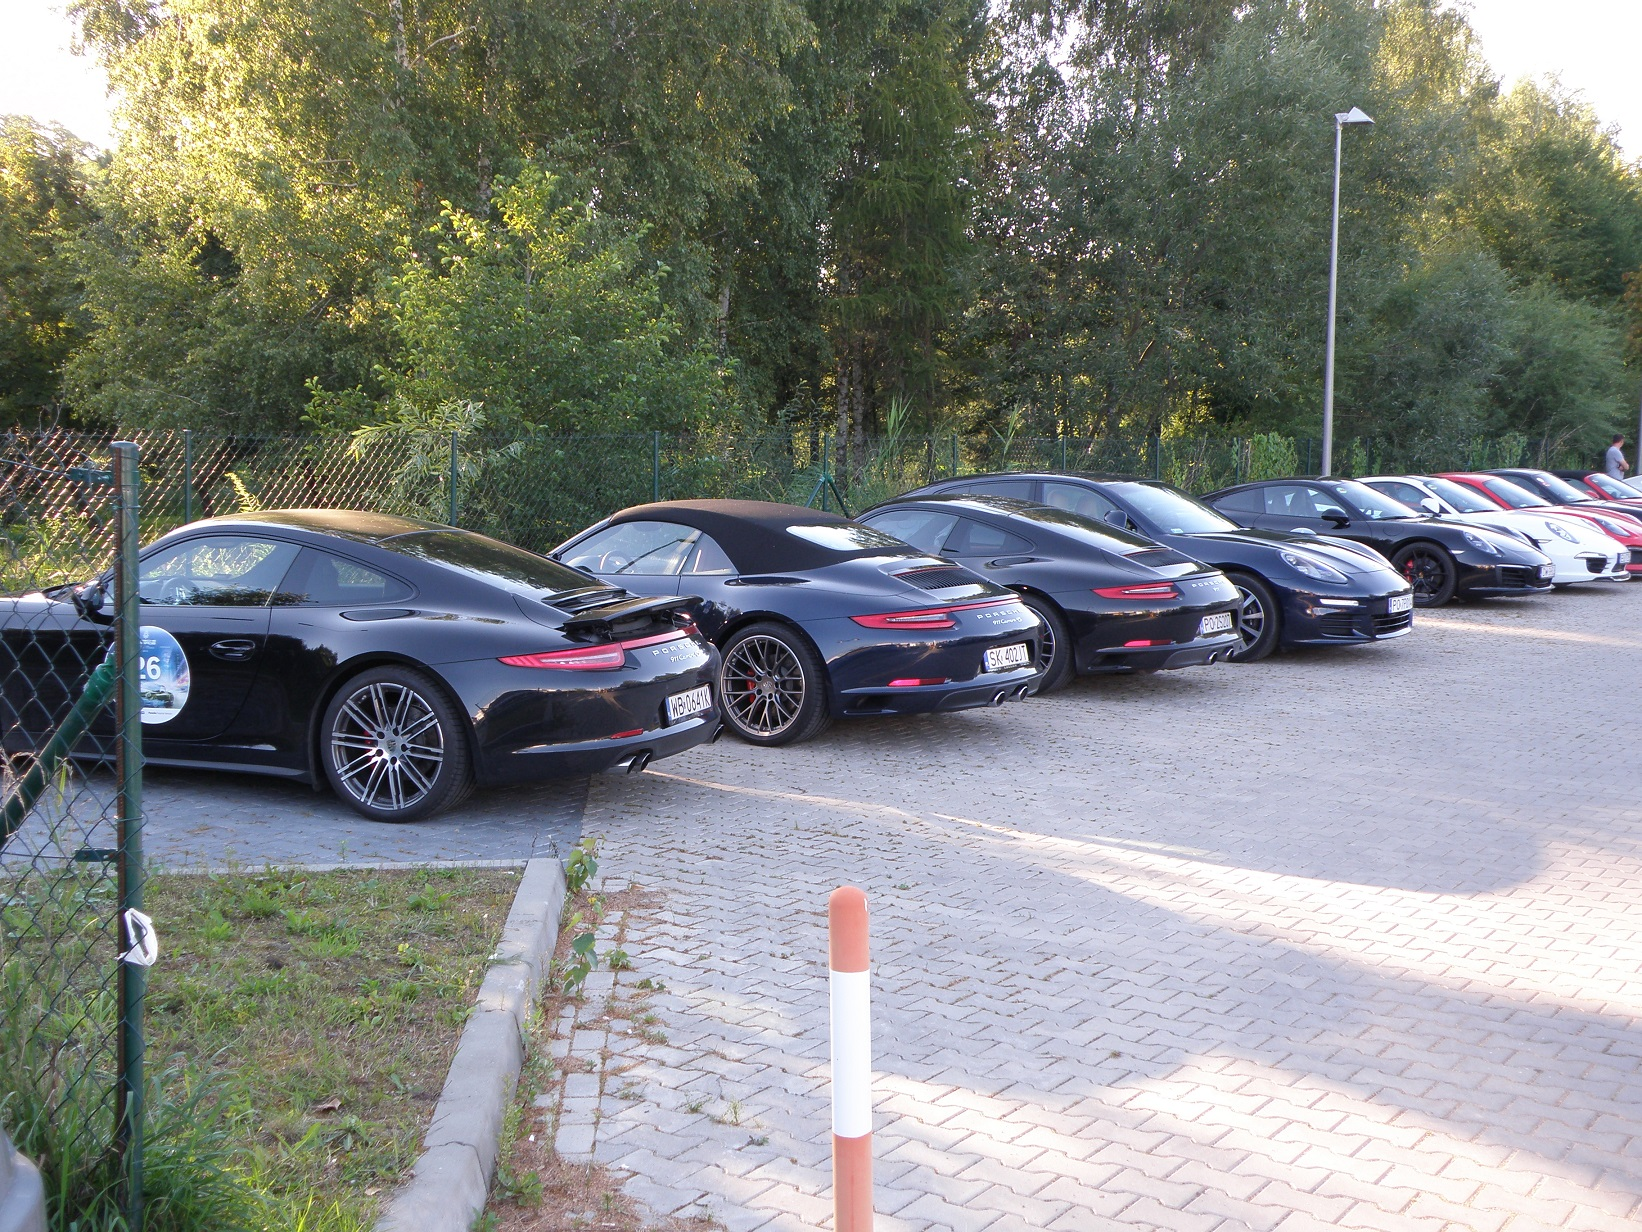 http://124coupe.pl/hosting/images/1472409747.jpg